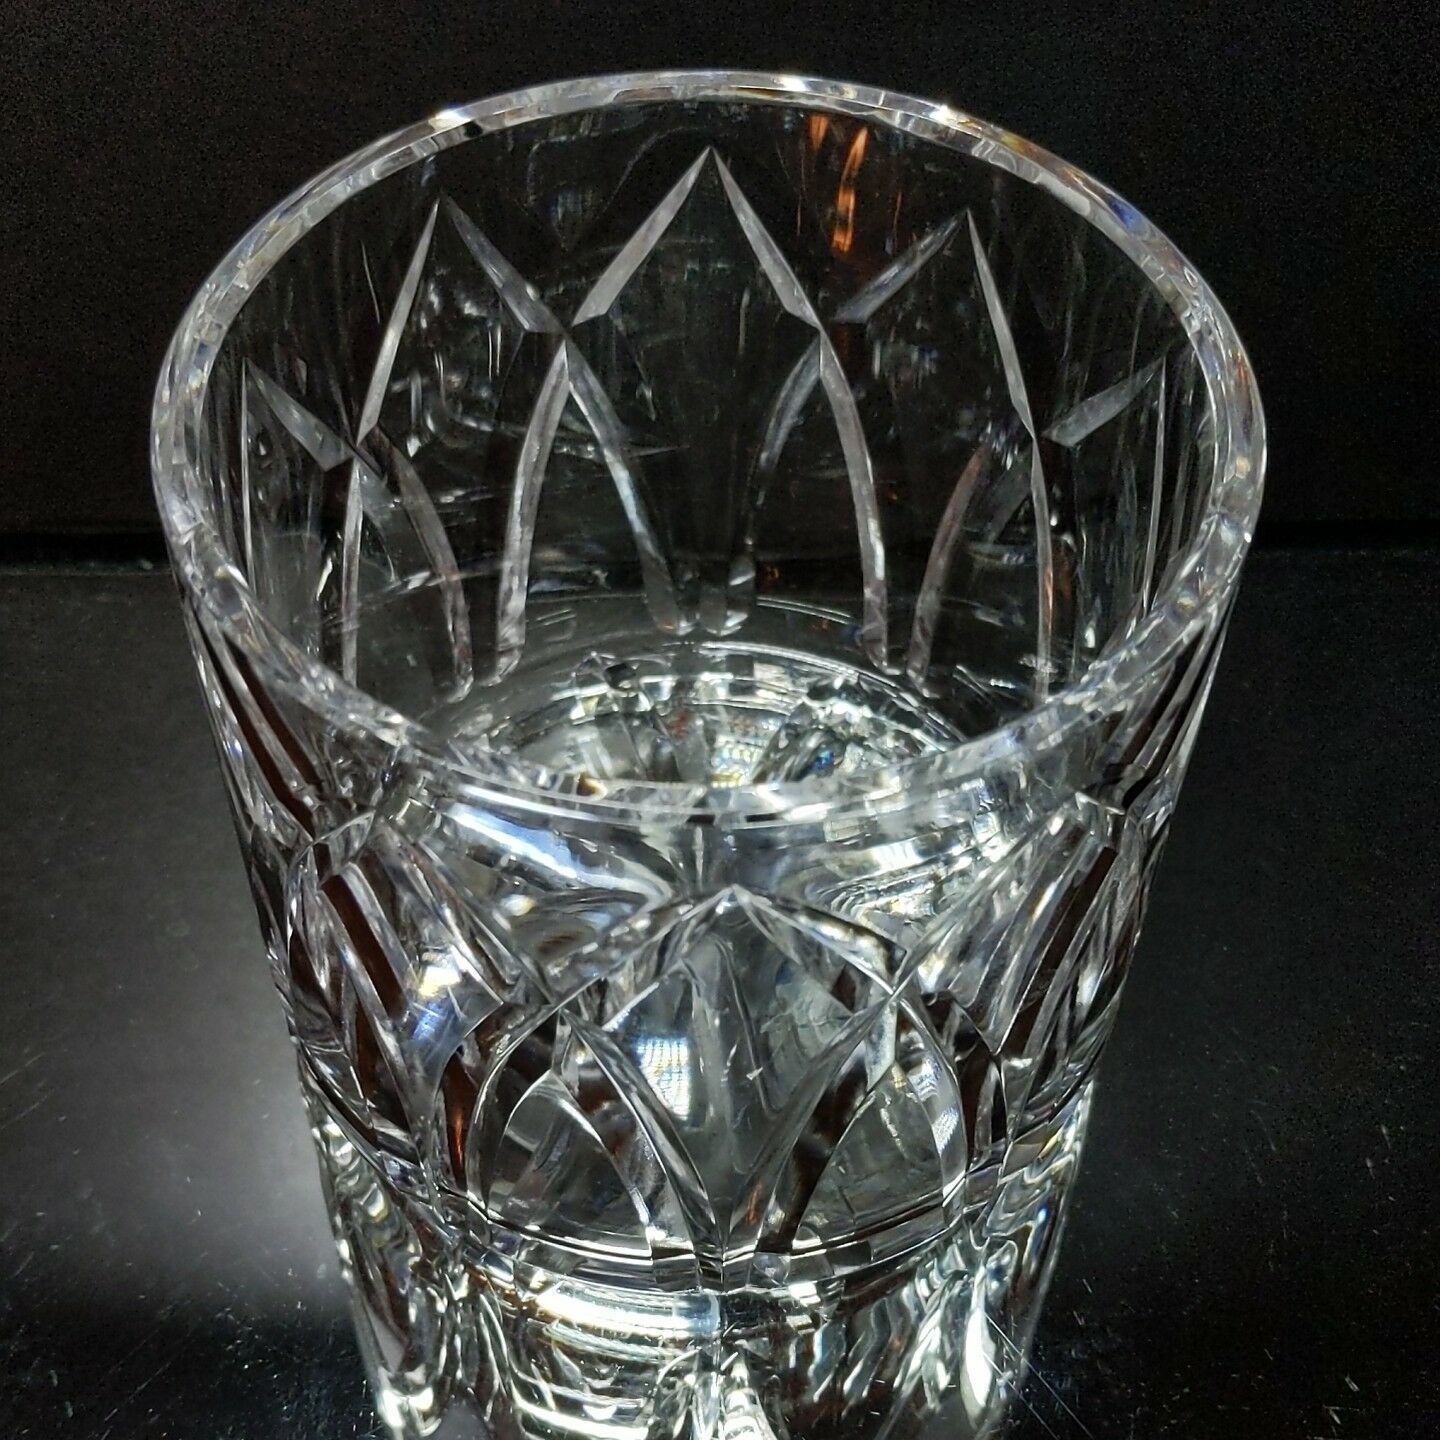 1 (One)  ROYAL BRIERLEY Cut Lead Crystal Round Candy / Incidental Dish - Signed image 2